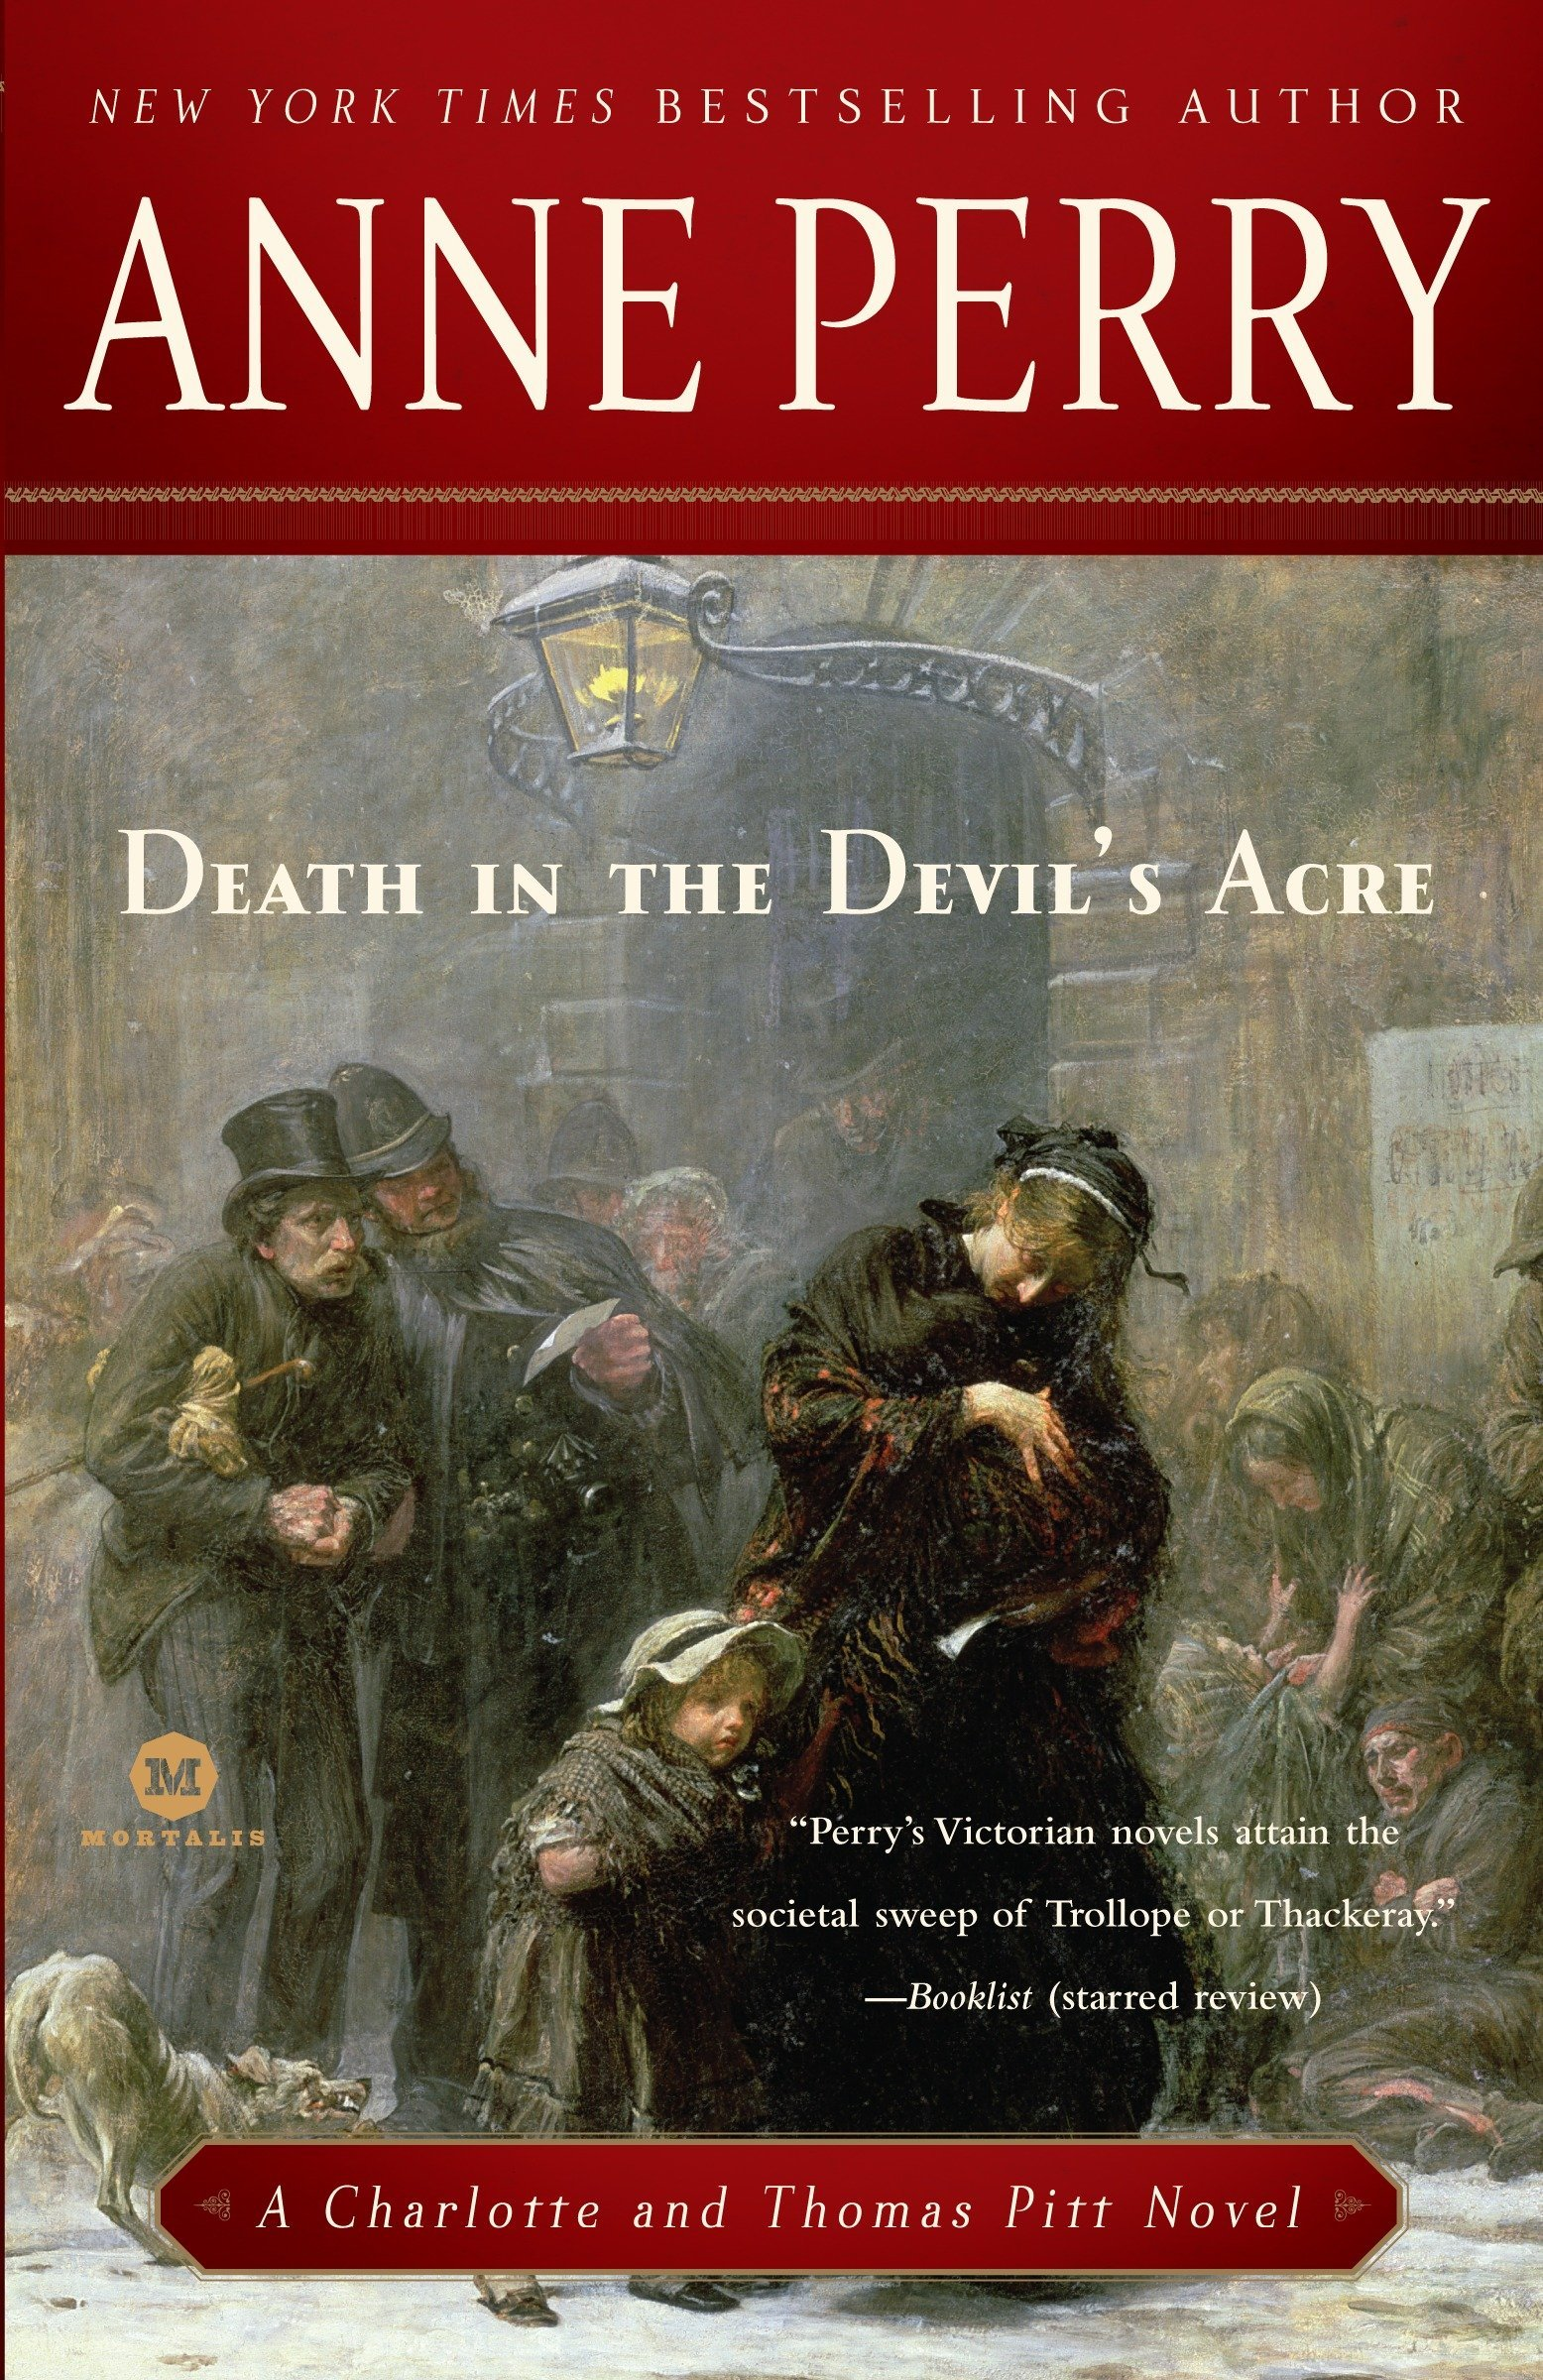 Death in the Devil's Acre: A Charlotte and Thomas Pitt Novel